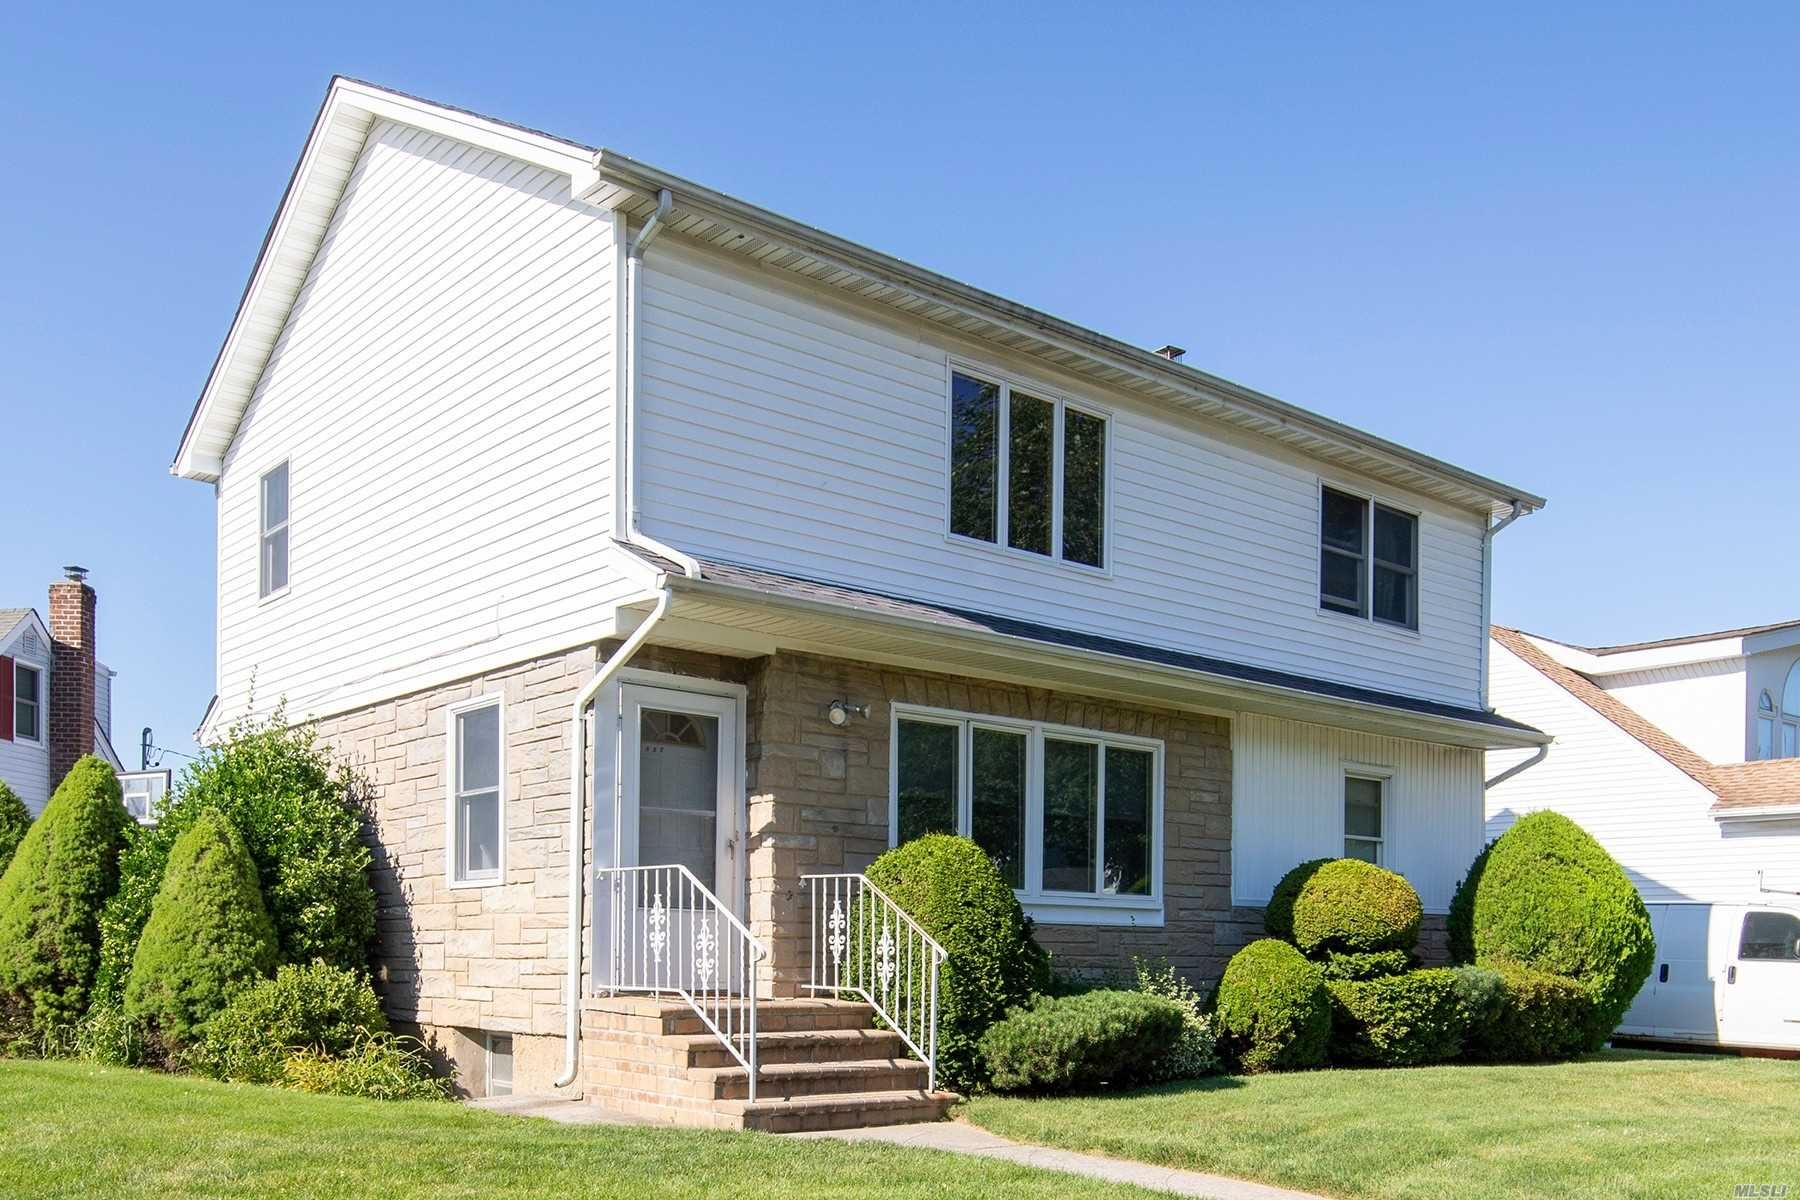 957 Southern Drive, Franklin Square, NY 11010 - MLS#: 3143700